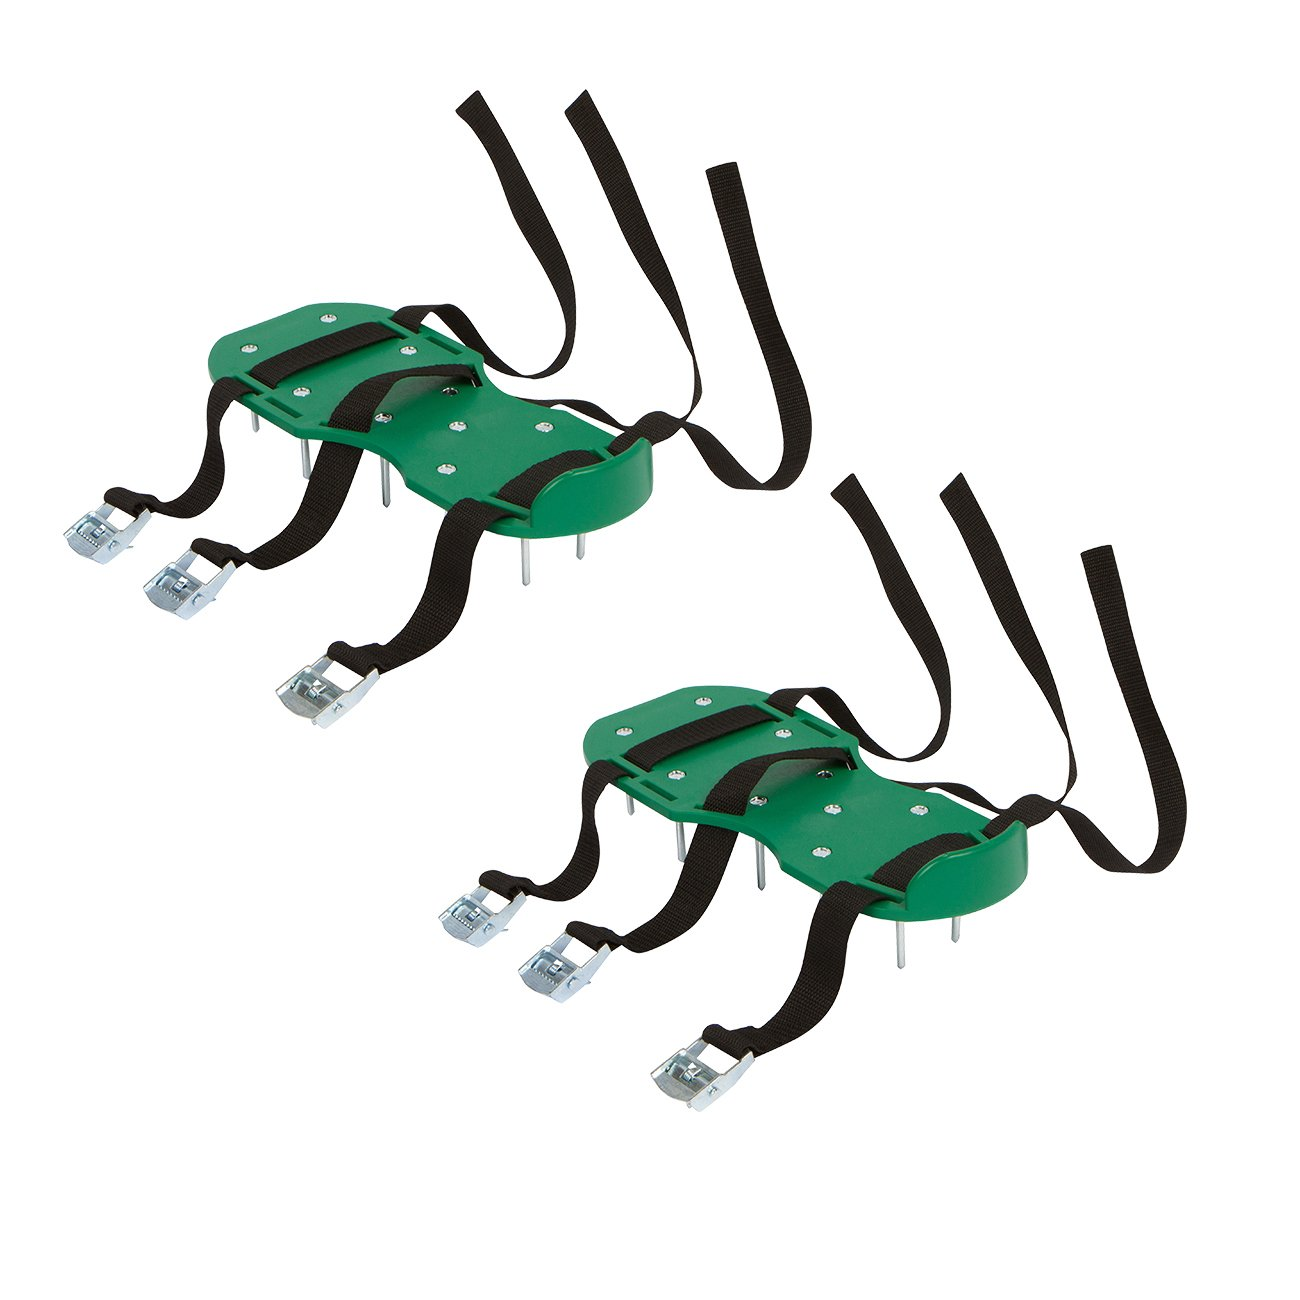 3 Buckle Lawn Aerator Shoes with Adjustable Straps by Trademark Innovations by Trademark Innovations